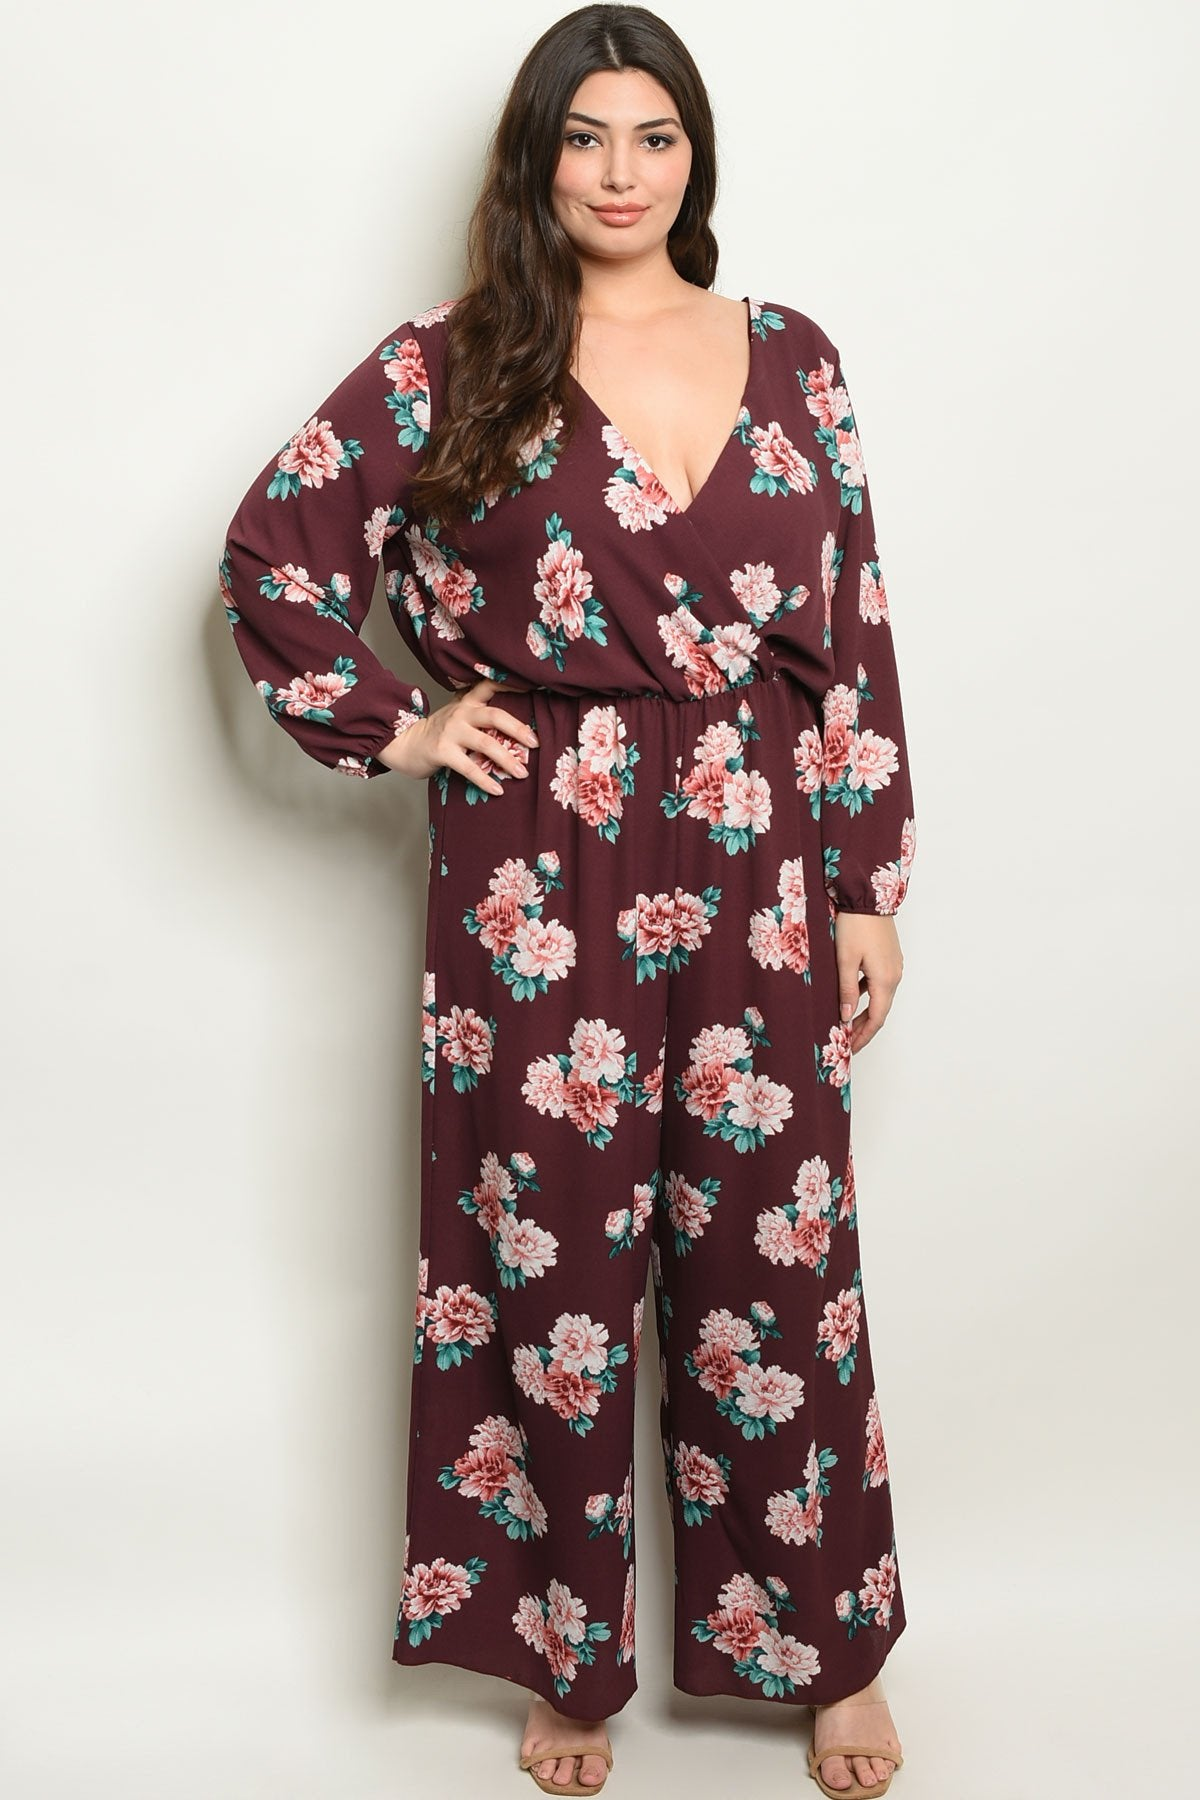 Burgundy Floral Plus Size Jumpsuit - Manifest Best Boutique